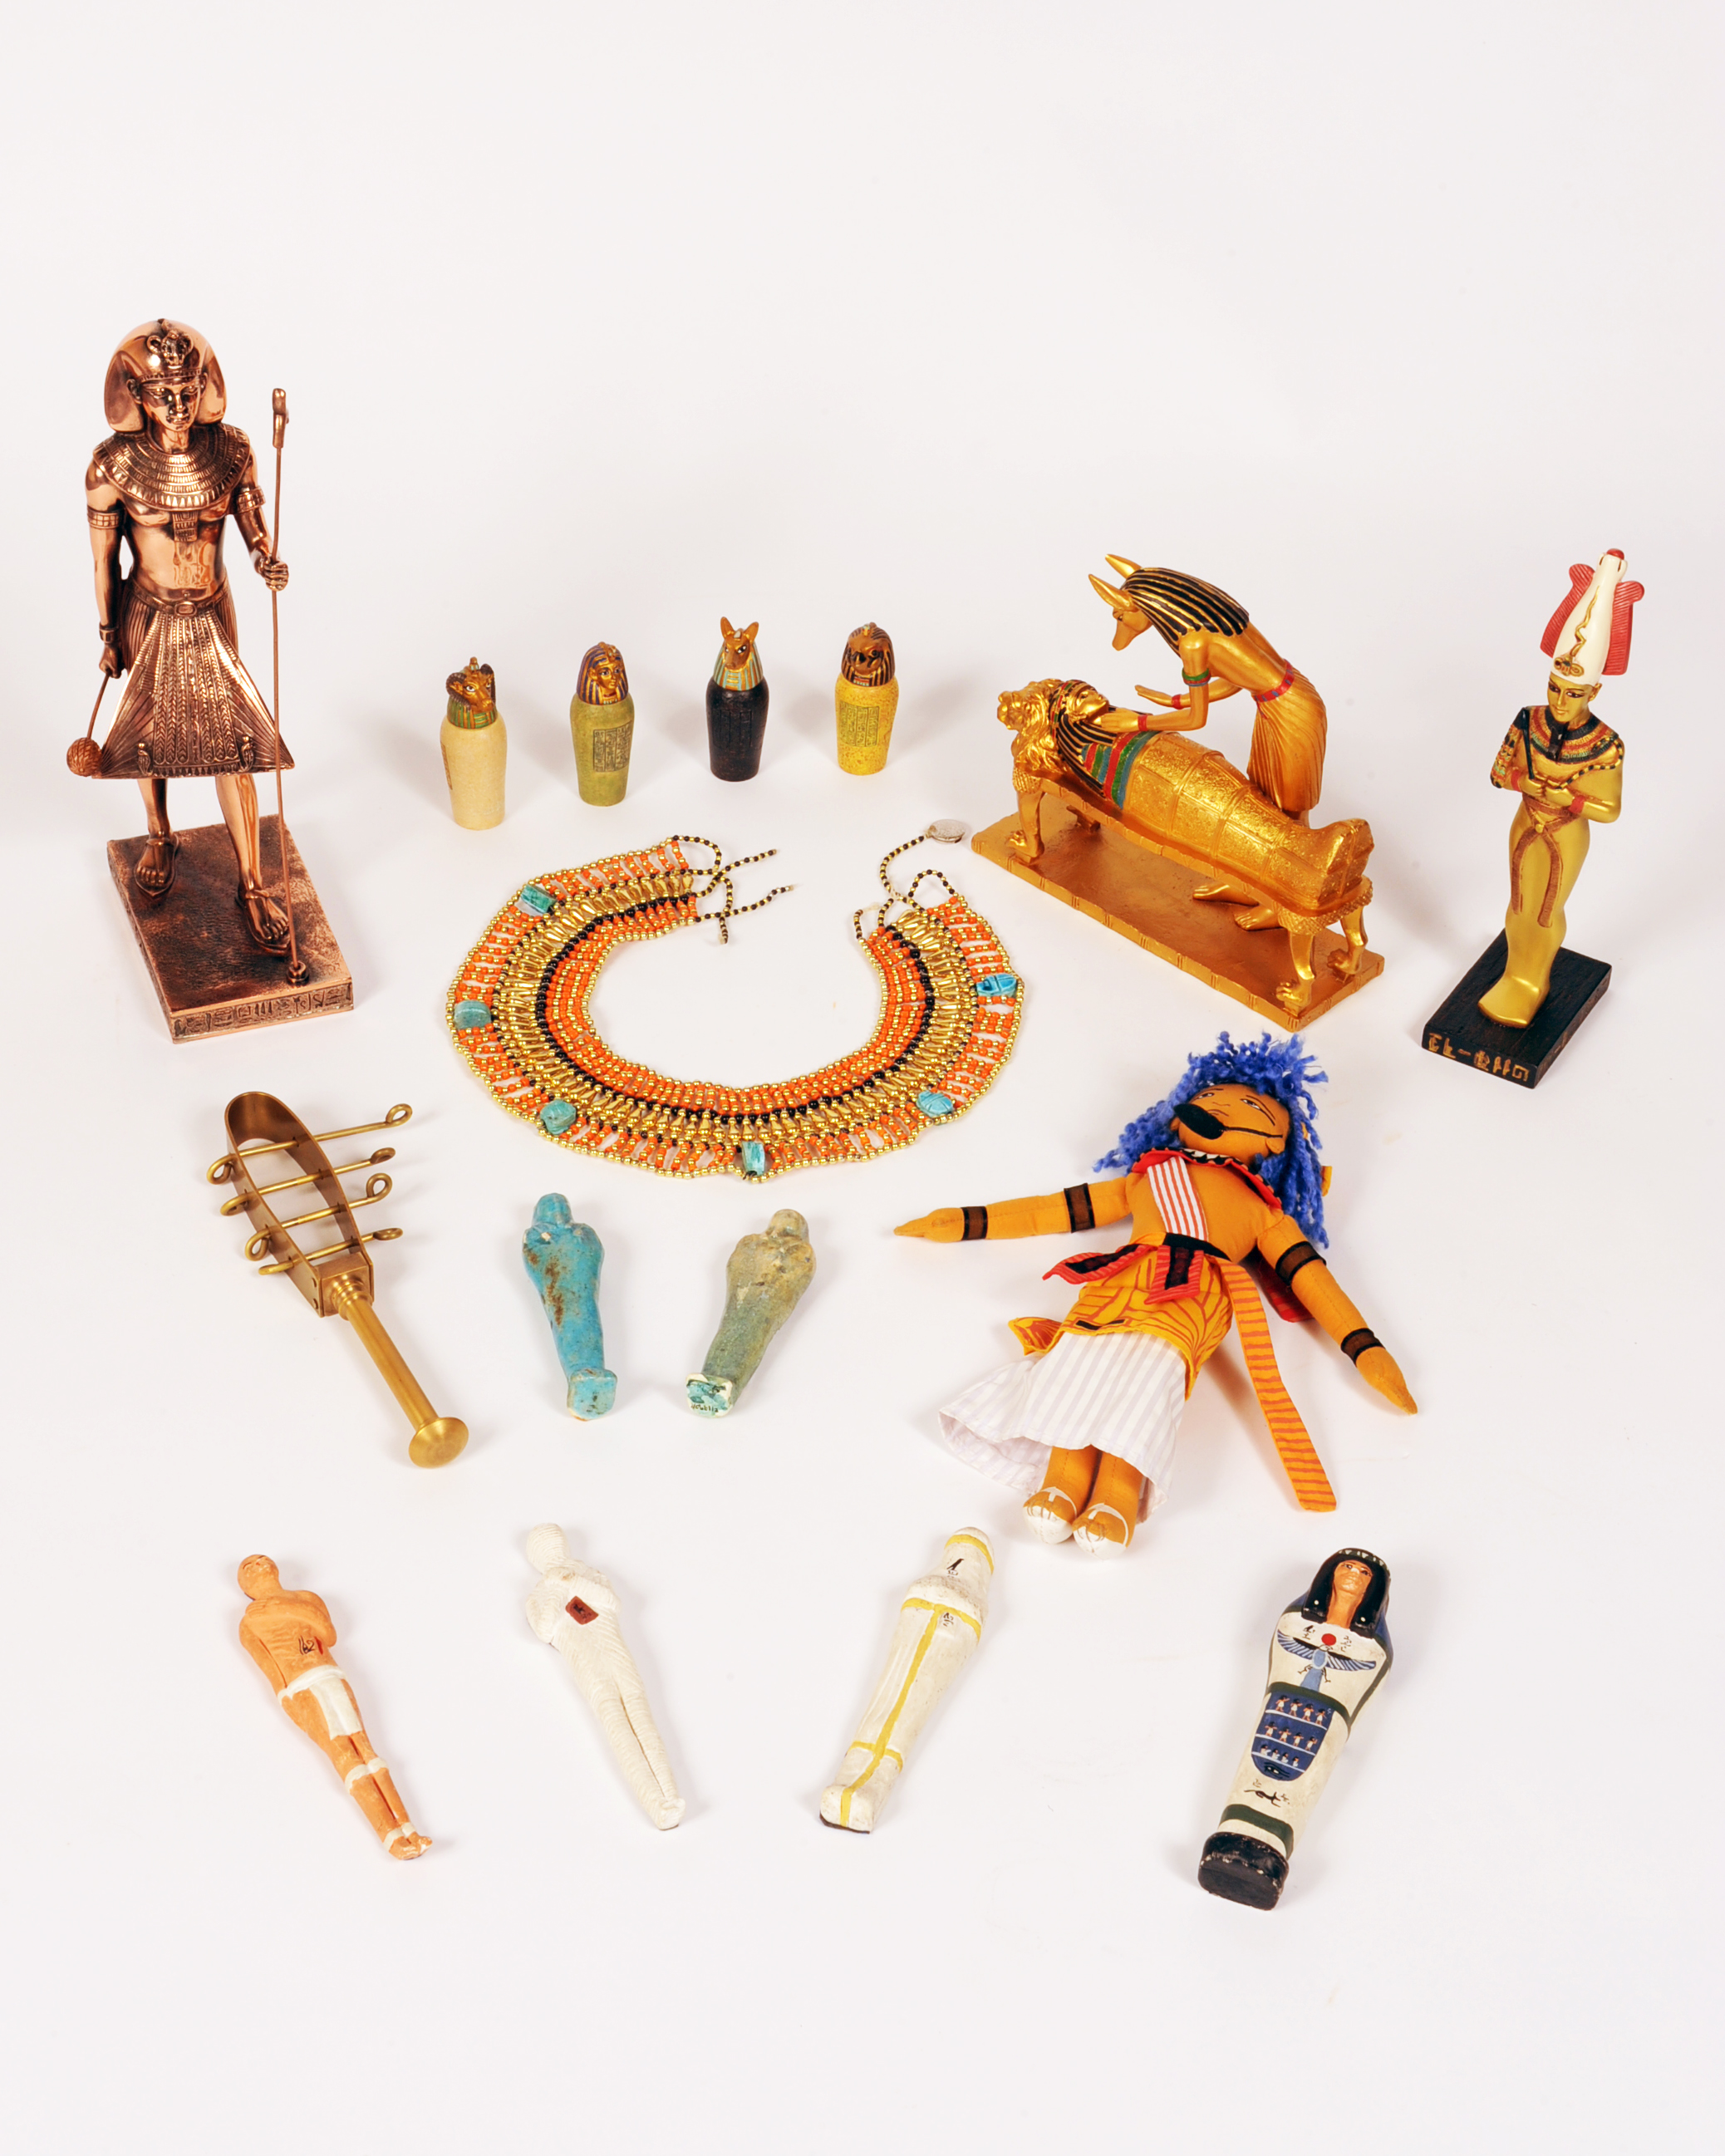 A Day in the Life of Ancient Egypt - Replica items: